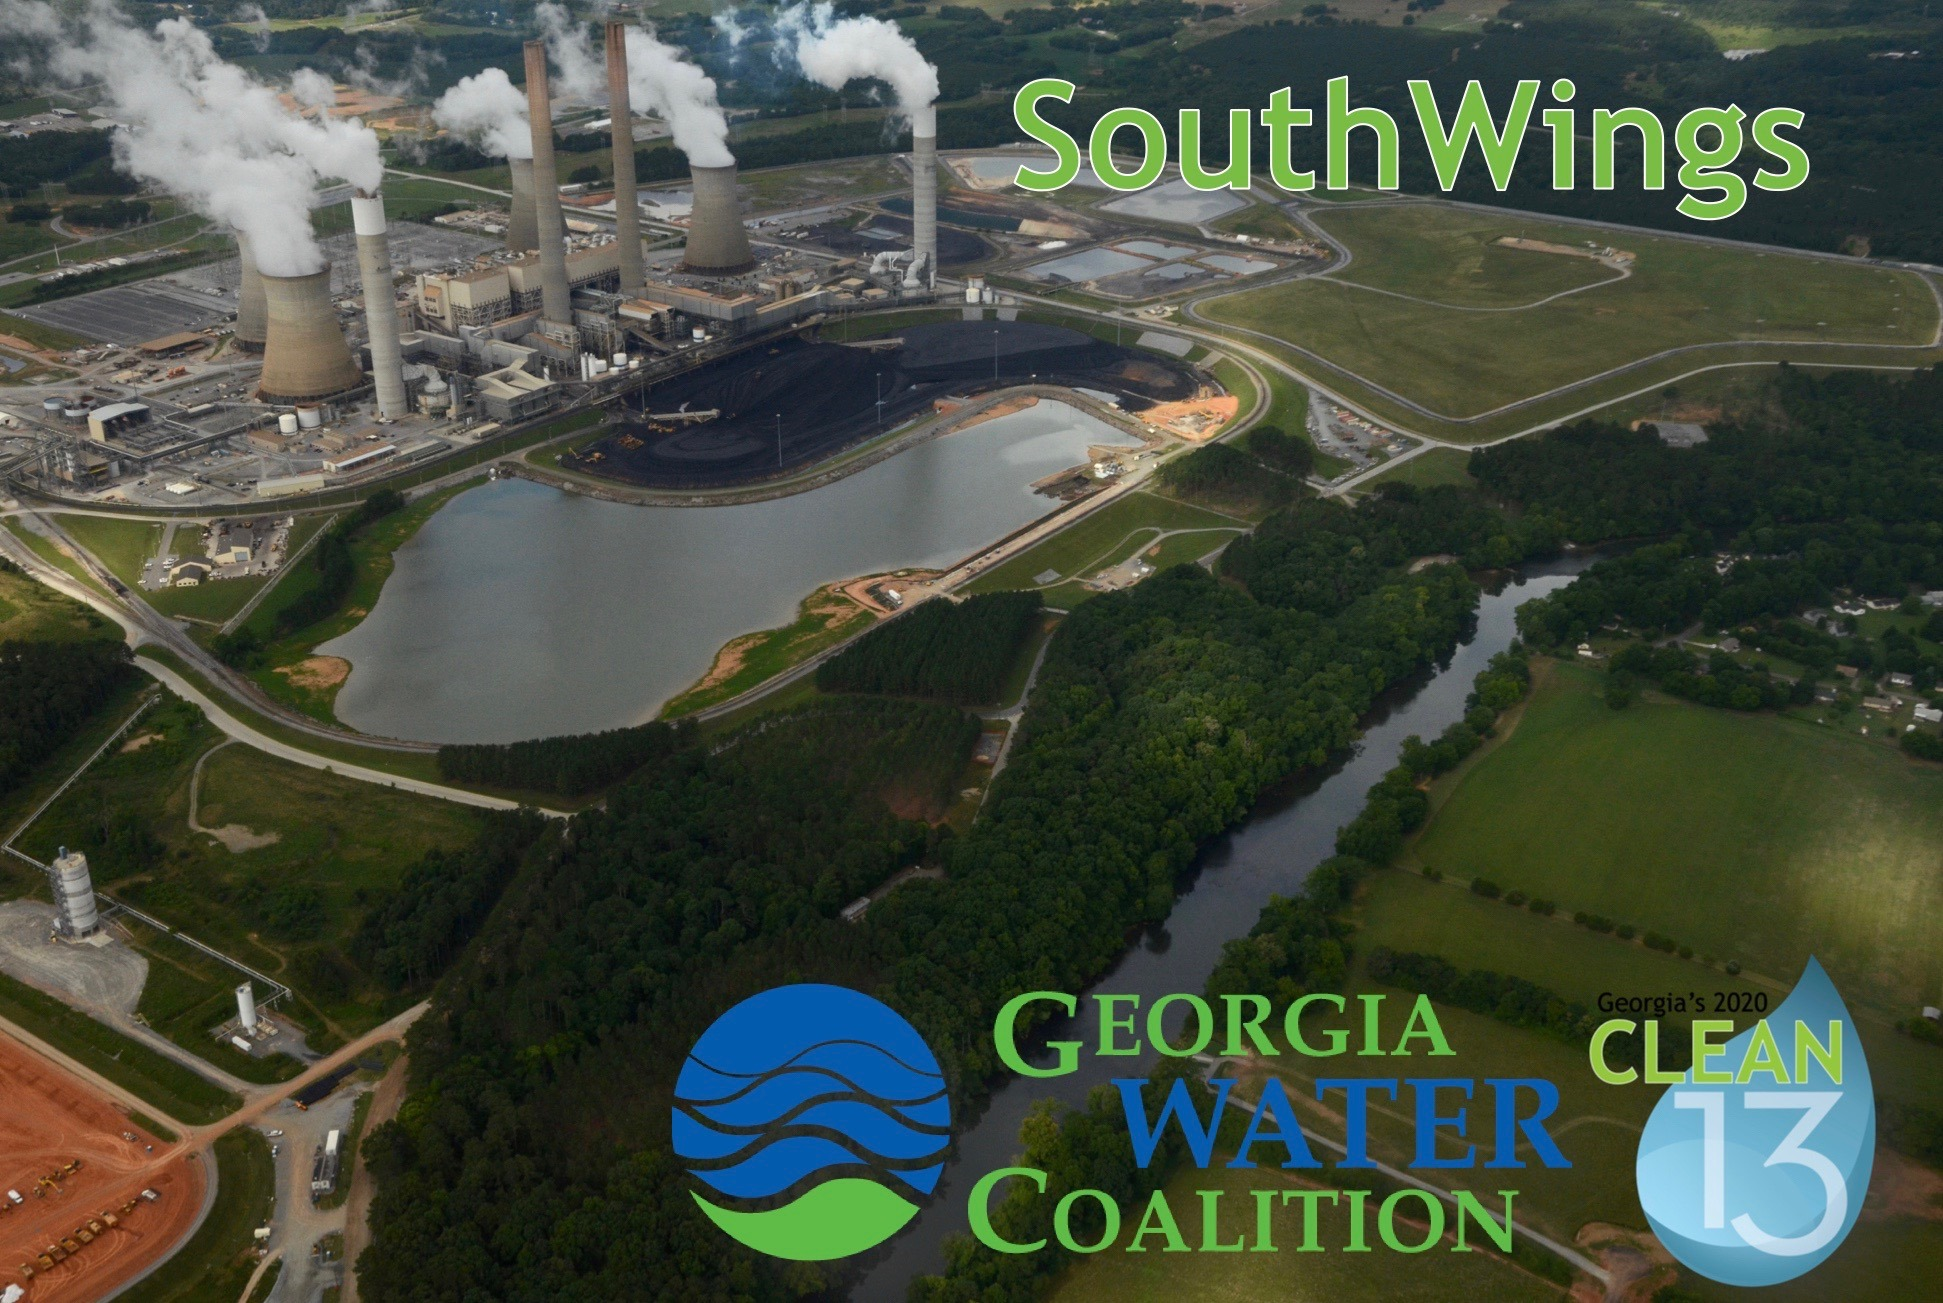 SouthWings named to Georgia Water Coalition's Clean 13 Report